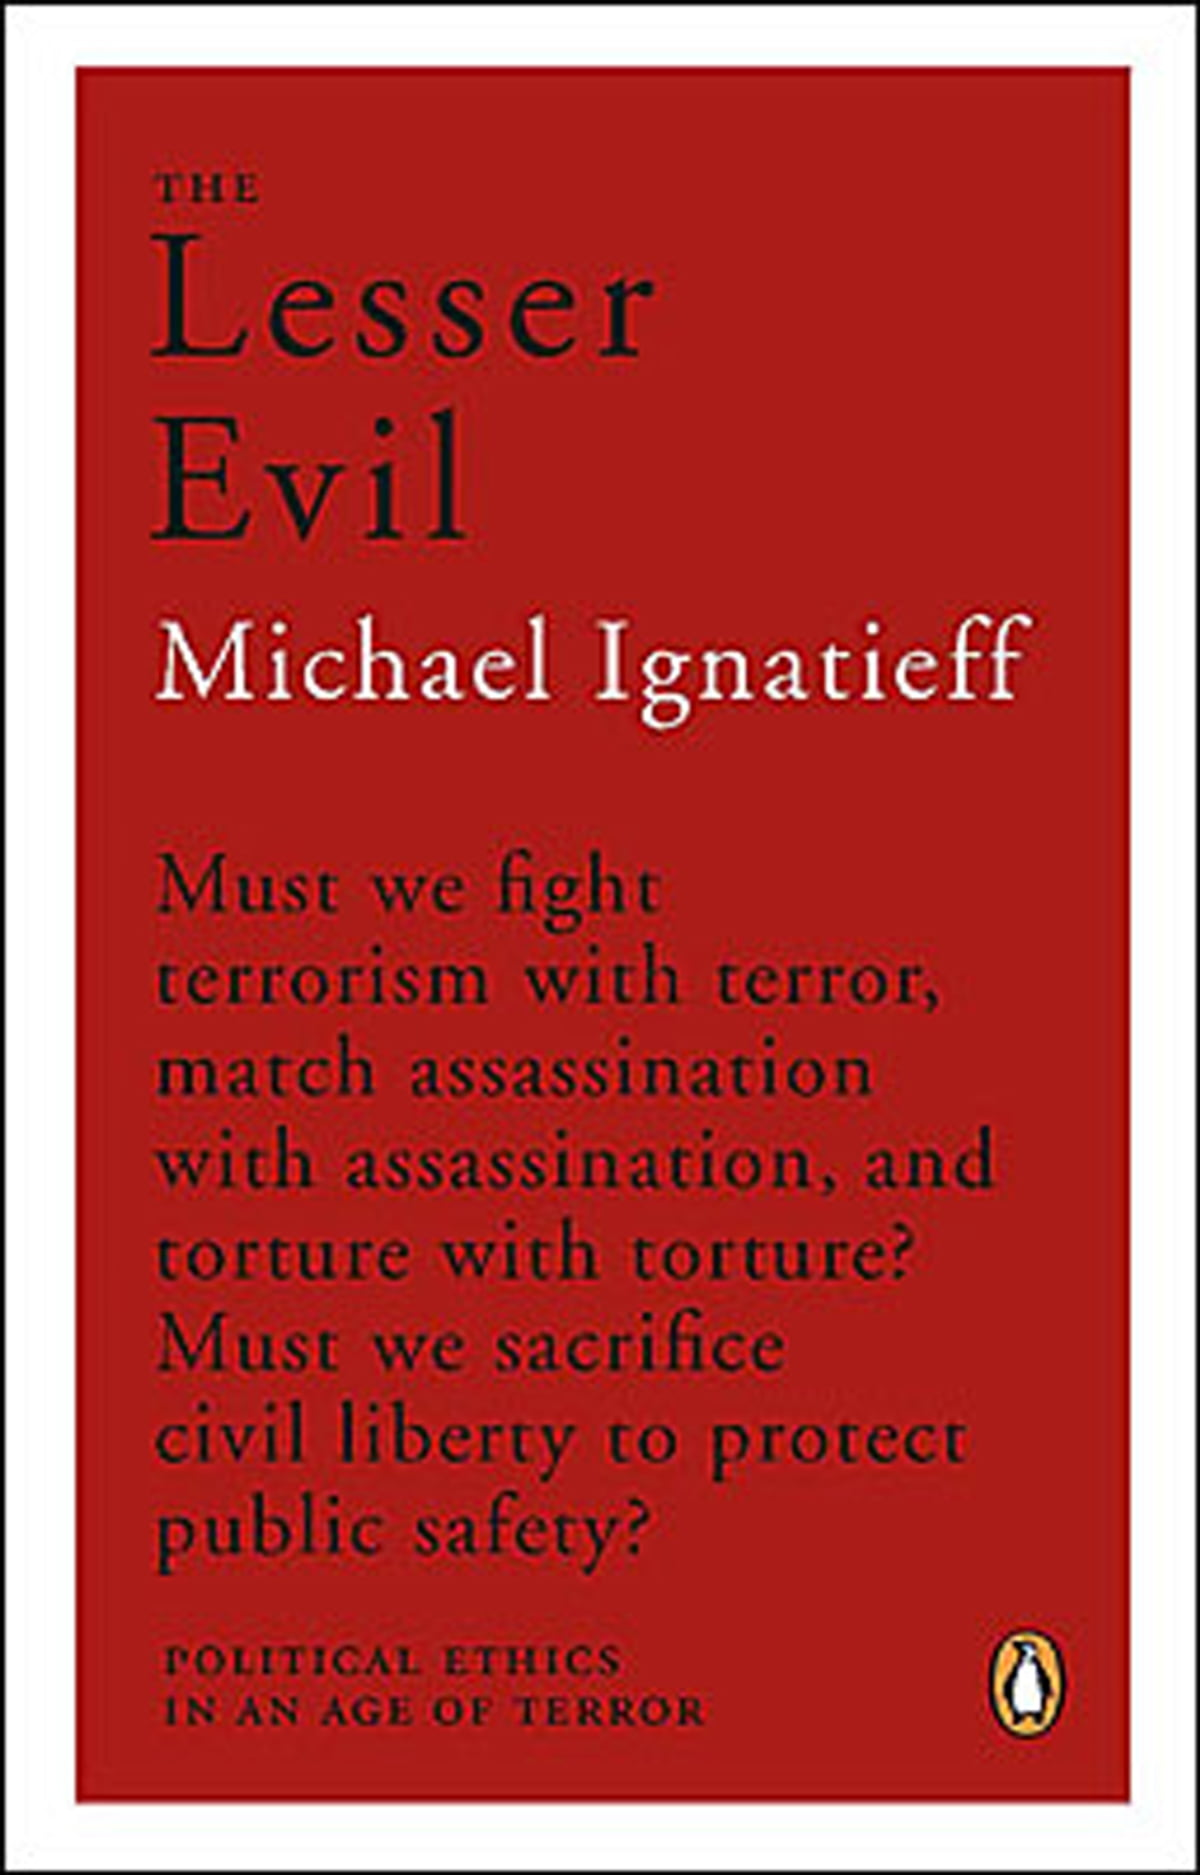 the lesser evil: political ethics in the age of terror essay Asta maskaliunaite's essay protecting democracy from terrorism: lesser evil and beyond (maskaliunaite, 2007) is in large part an attack on ignatieff's views, including the new york times essay i had discussed in my.